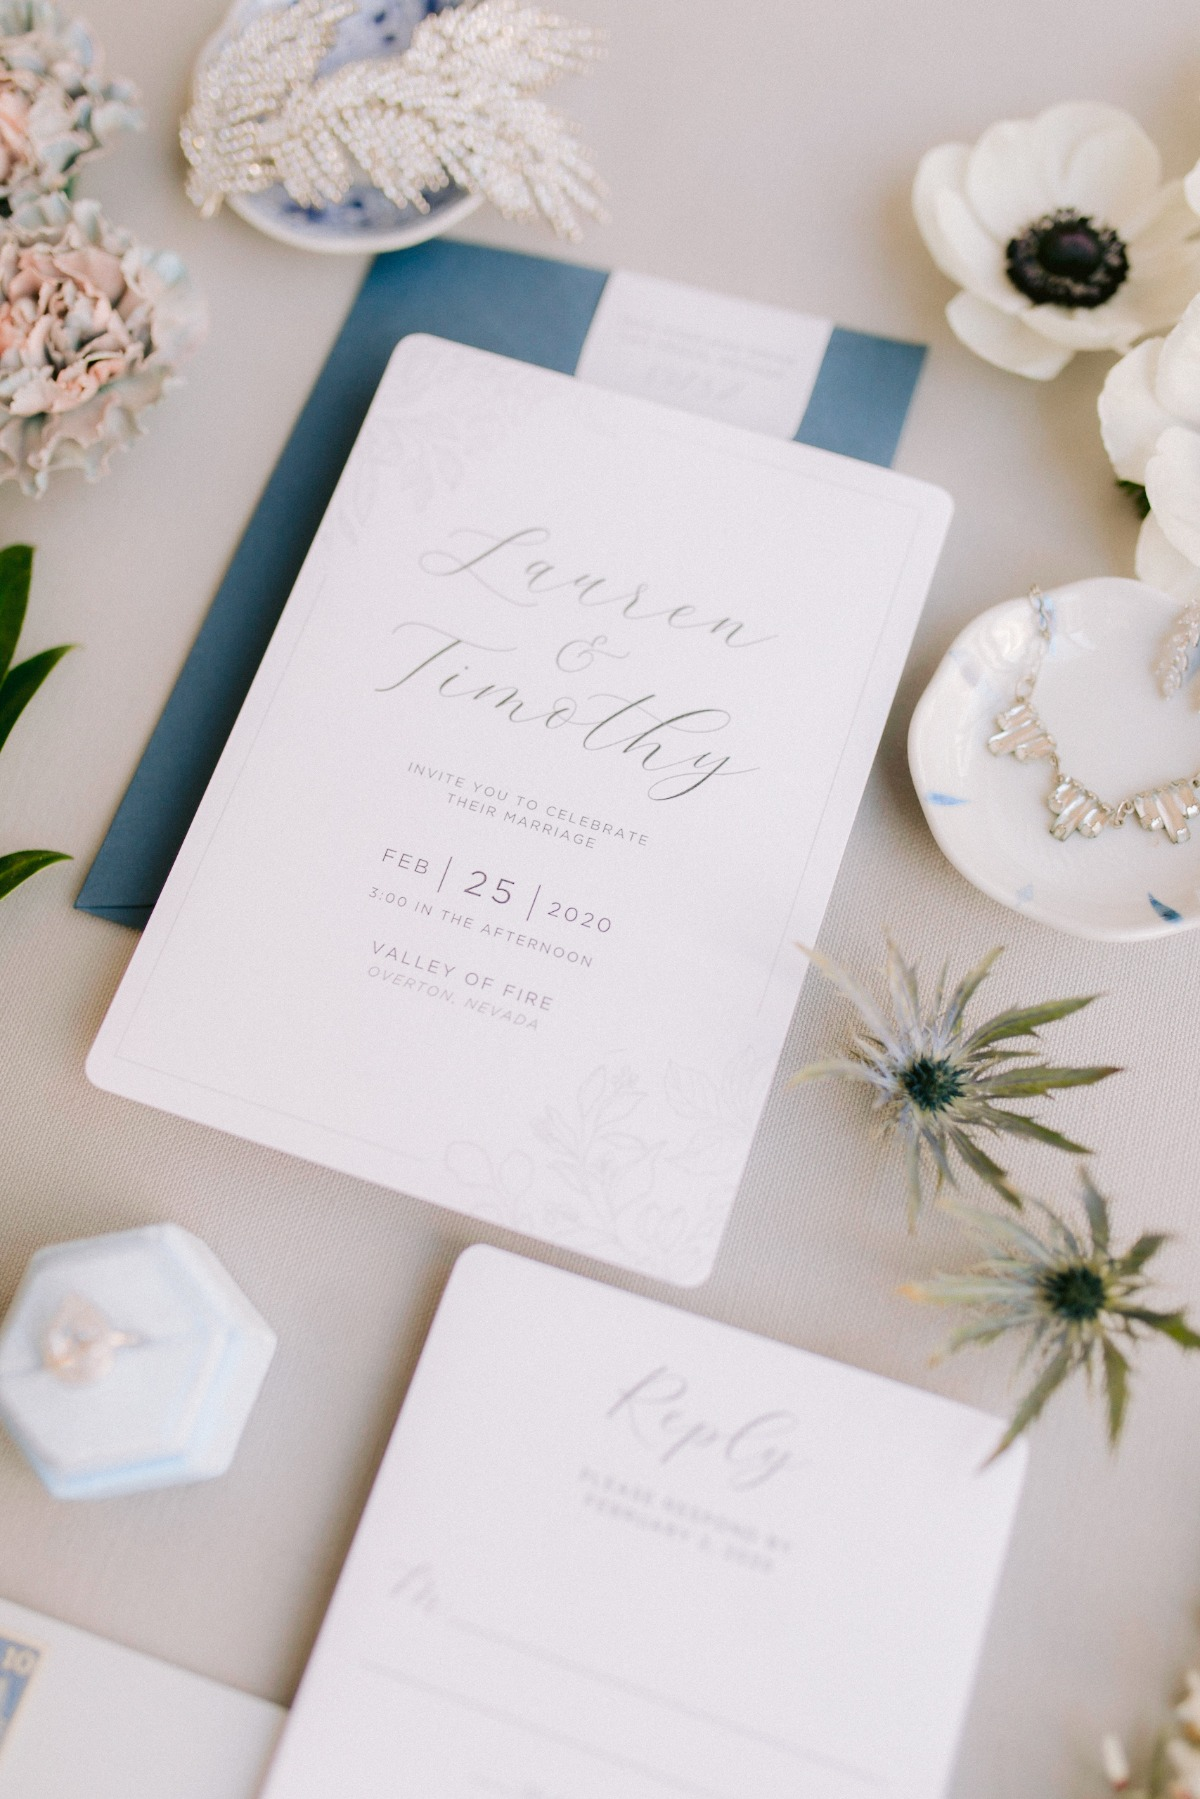 simple and elegant wedding invites from Paper and Home